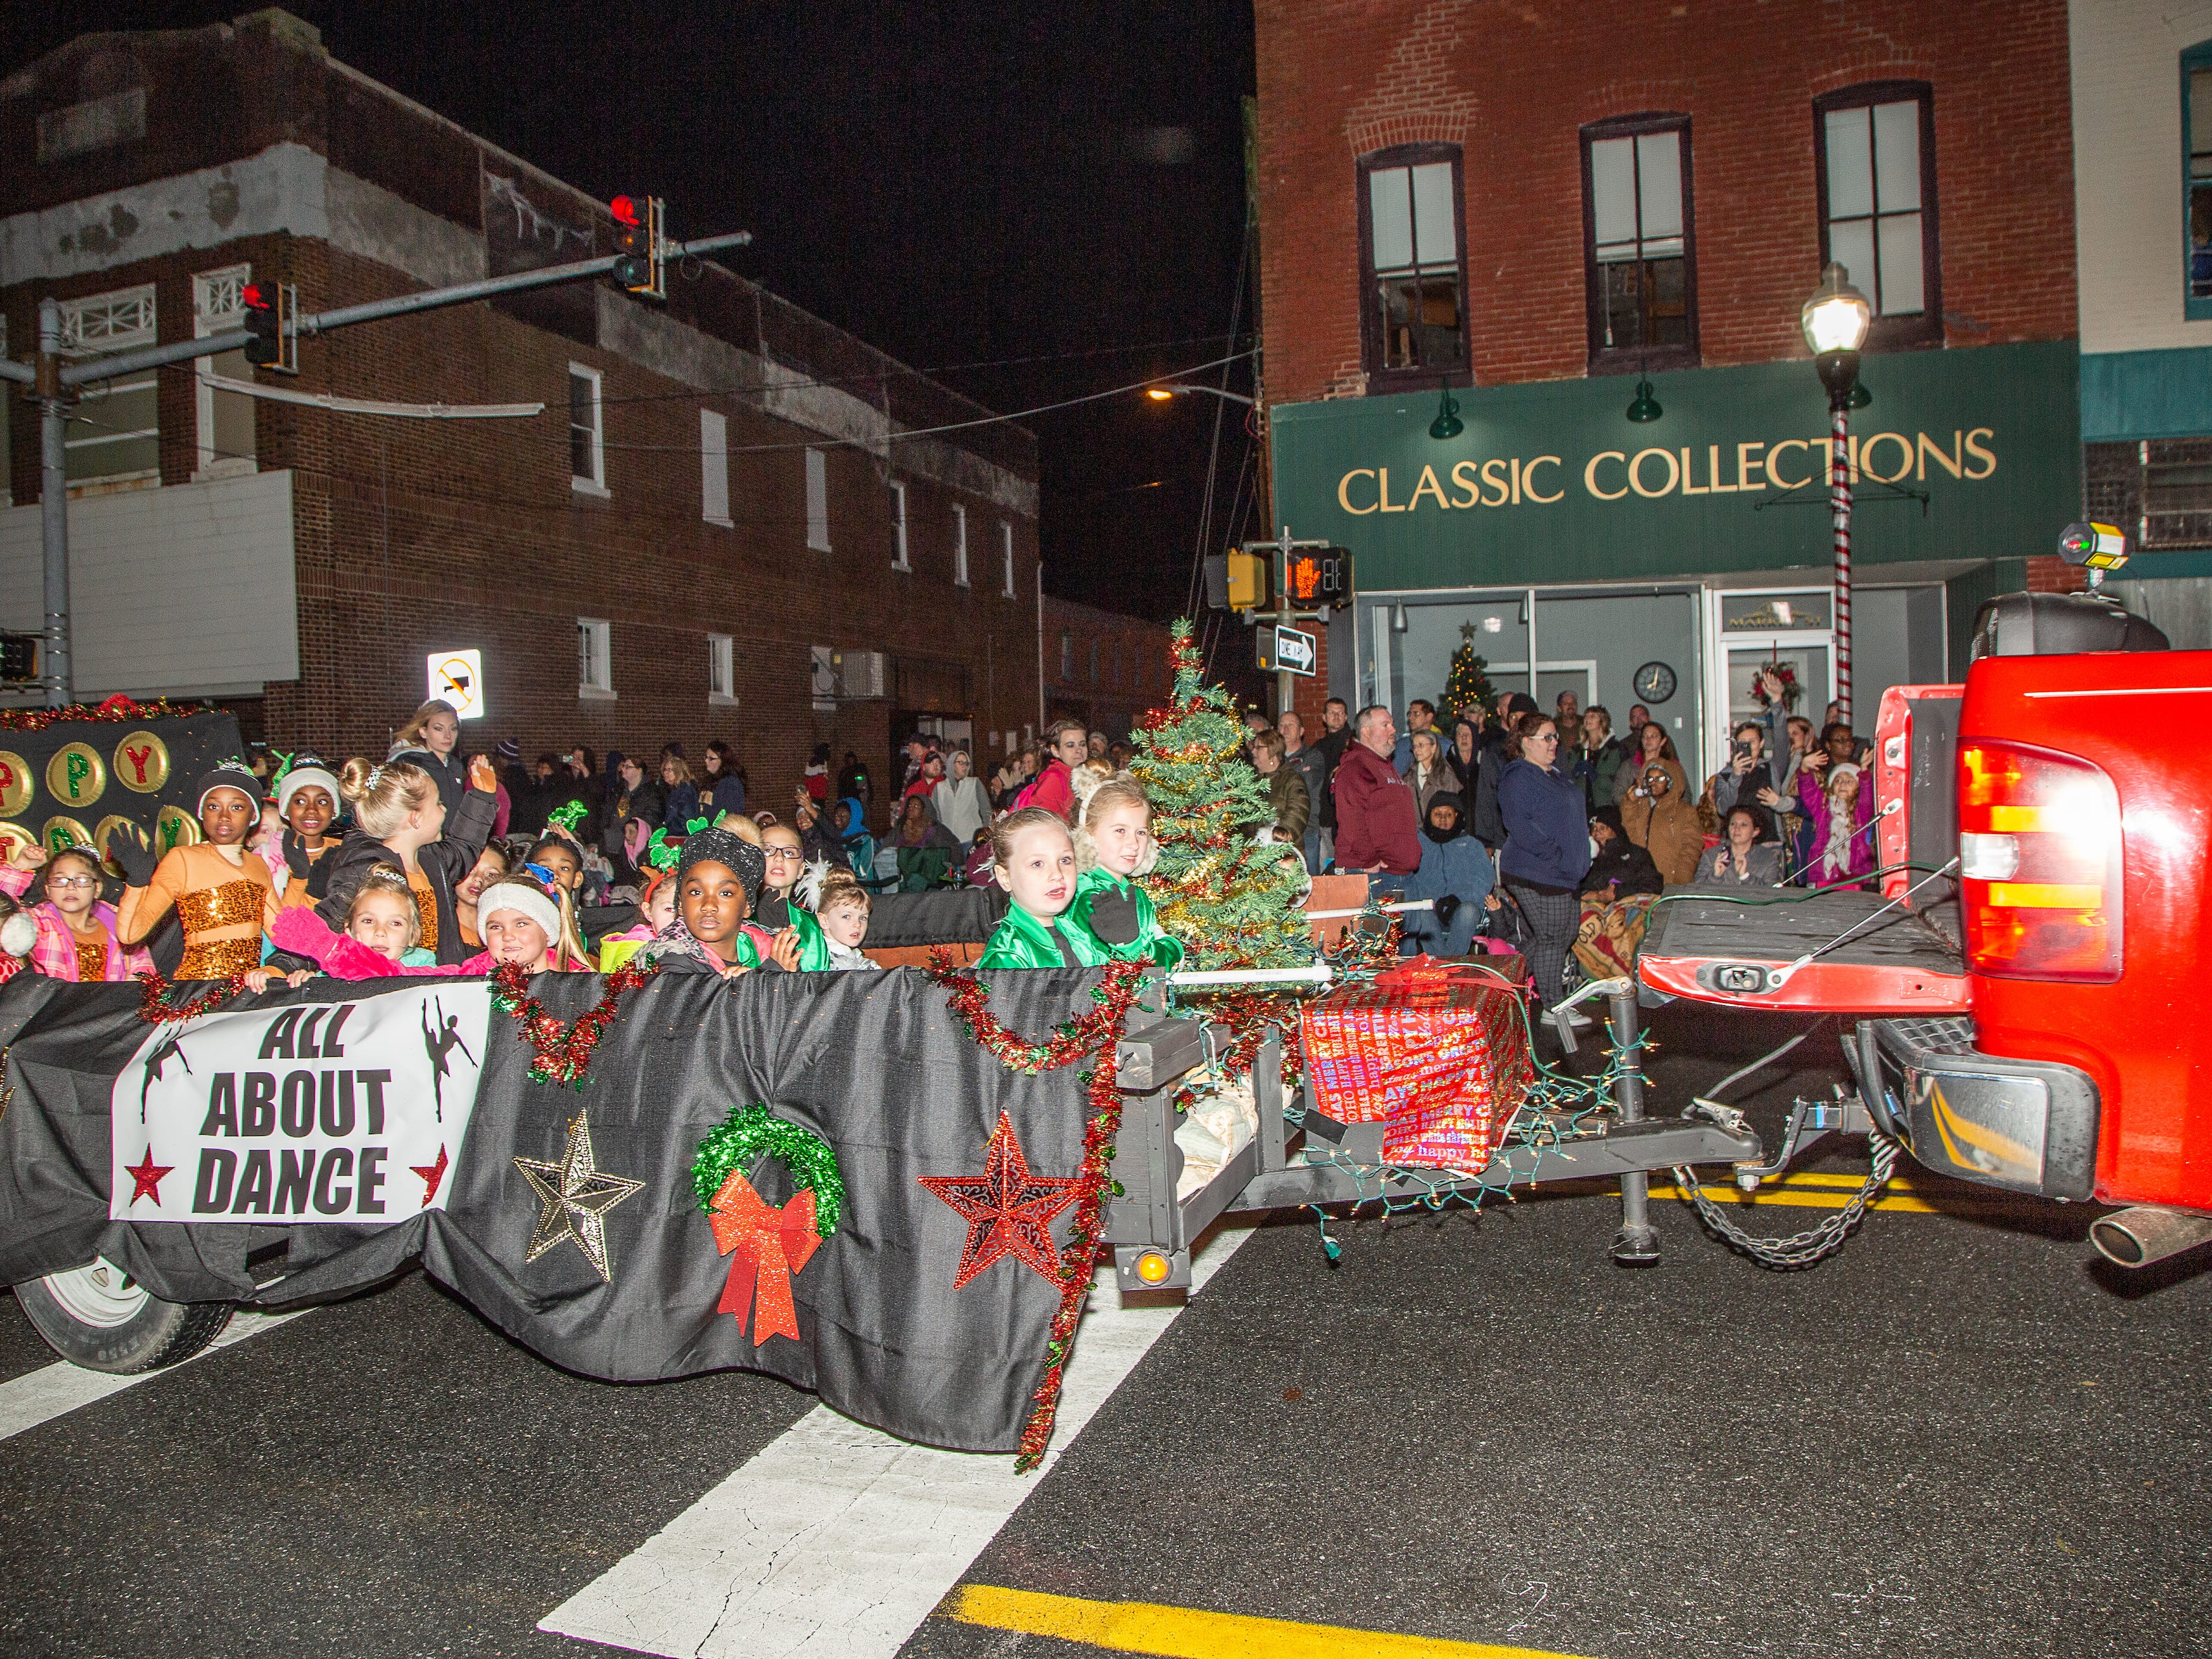 The All About Dance team from Pocomoke rides a float at the annual Christmas parade.